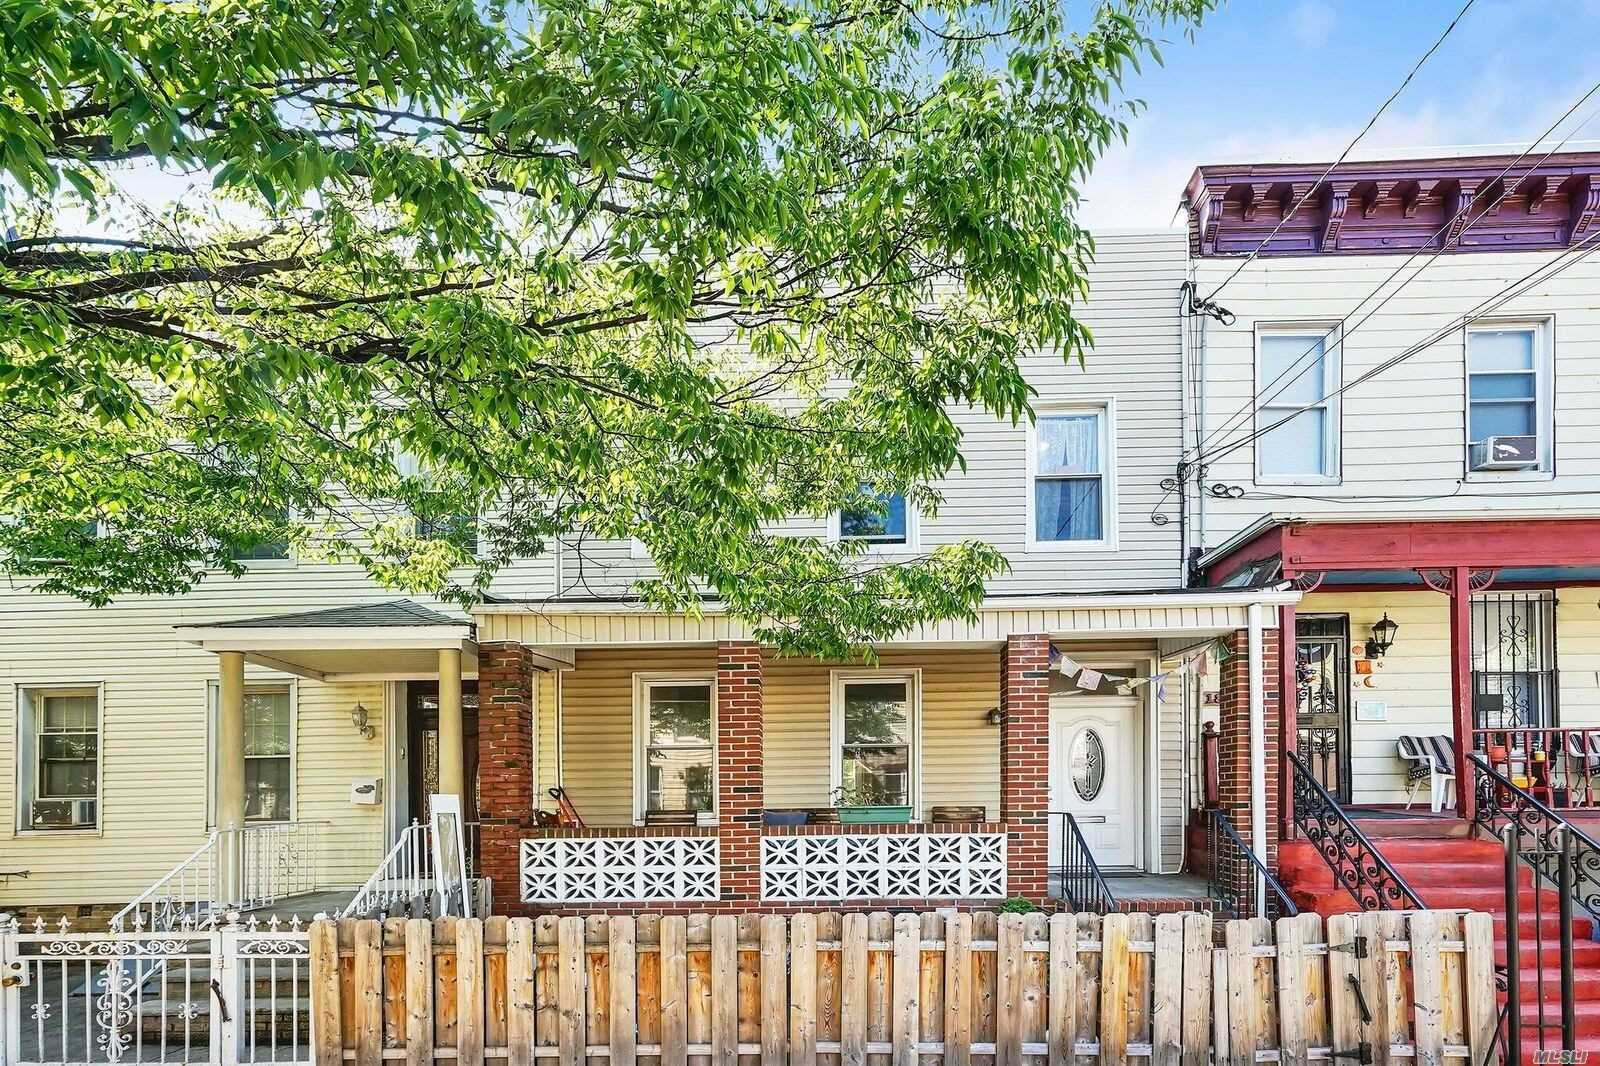 Renovated 2 Fam Just Blocks To M Or L Train . Prime Ridgewood Location Yet Close To Bushwick Restaurants & Bars. Each Apt Is Well Maintained W/ Mod Kitchen, Bath, & Hardwood Flrs. Full Fin Bsmt W/ Washer & Dryer, Skylight, Brick Front Porch, Back Patio & Large Pvt Yard Perfect For Entertaining And Pets! 1st Flr & Bsmt Are Vacant & Is Great For An Owners Duplex. 2nd Fl Apt Will Be Vot & Can Be Rented Out For Additional Income. Great Neighbors & A Quiet Street Makes This Your Oasis In Nyc